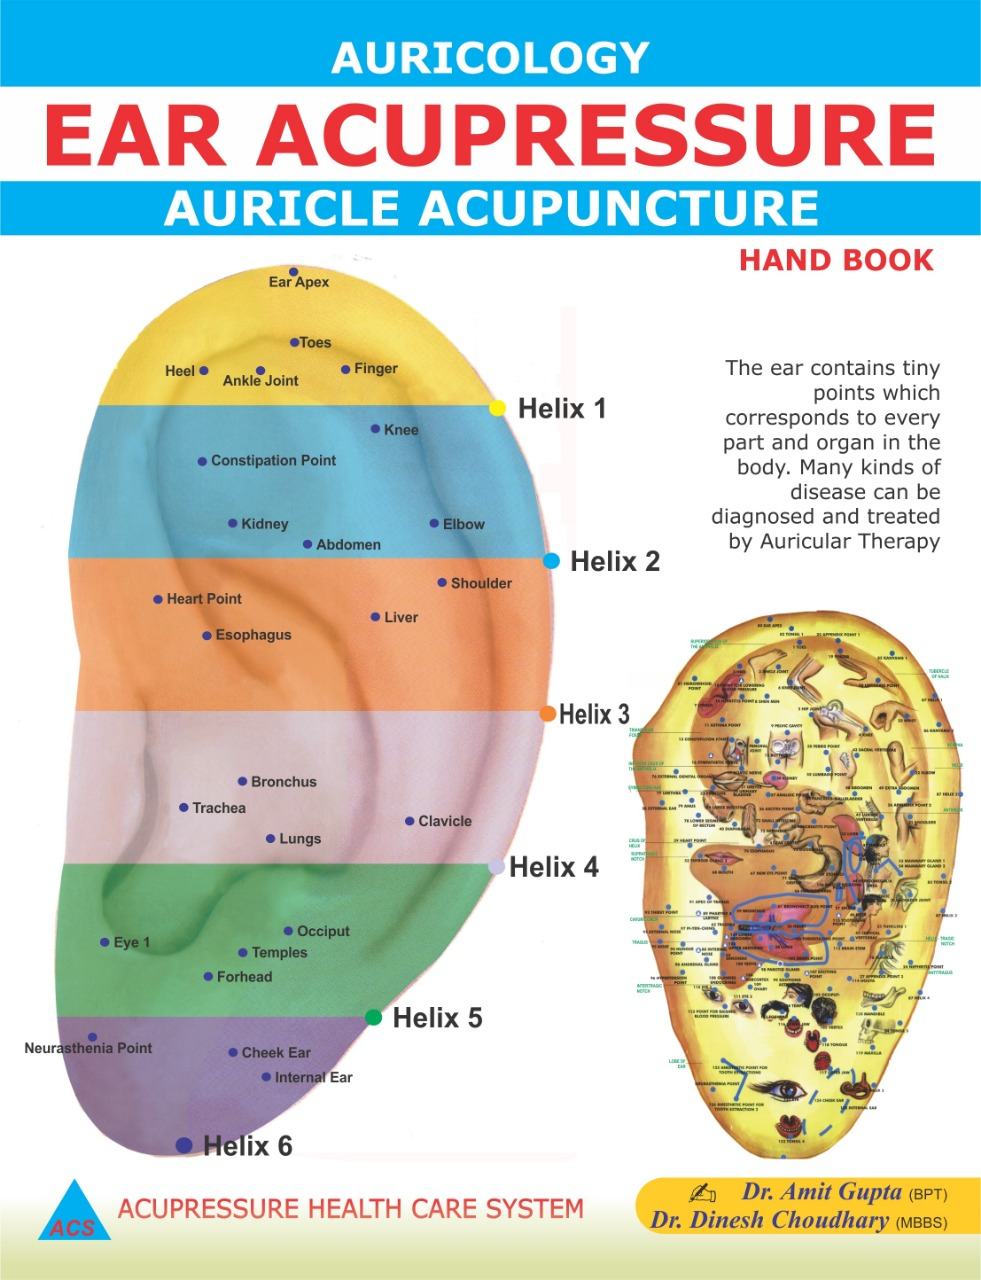 Ear Acupuncture/Acupressure-Auricology (eng)  - 571